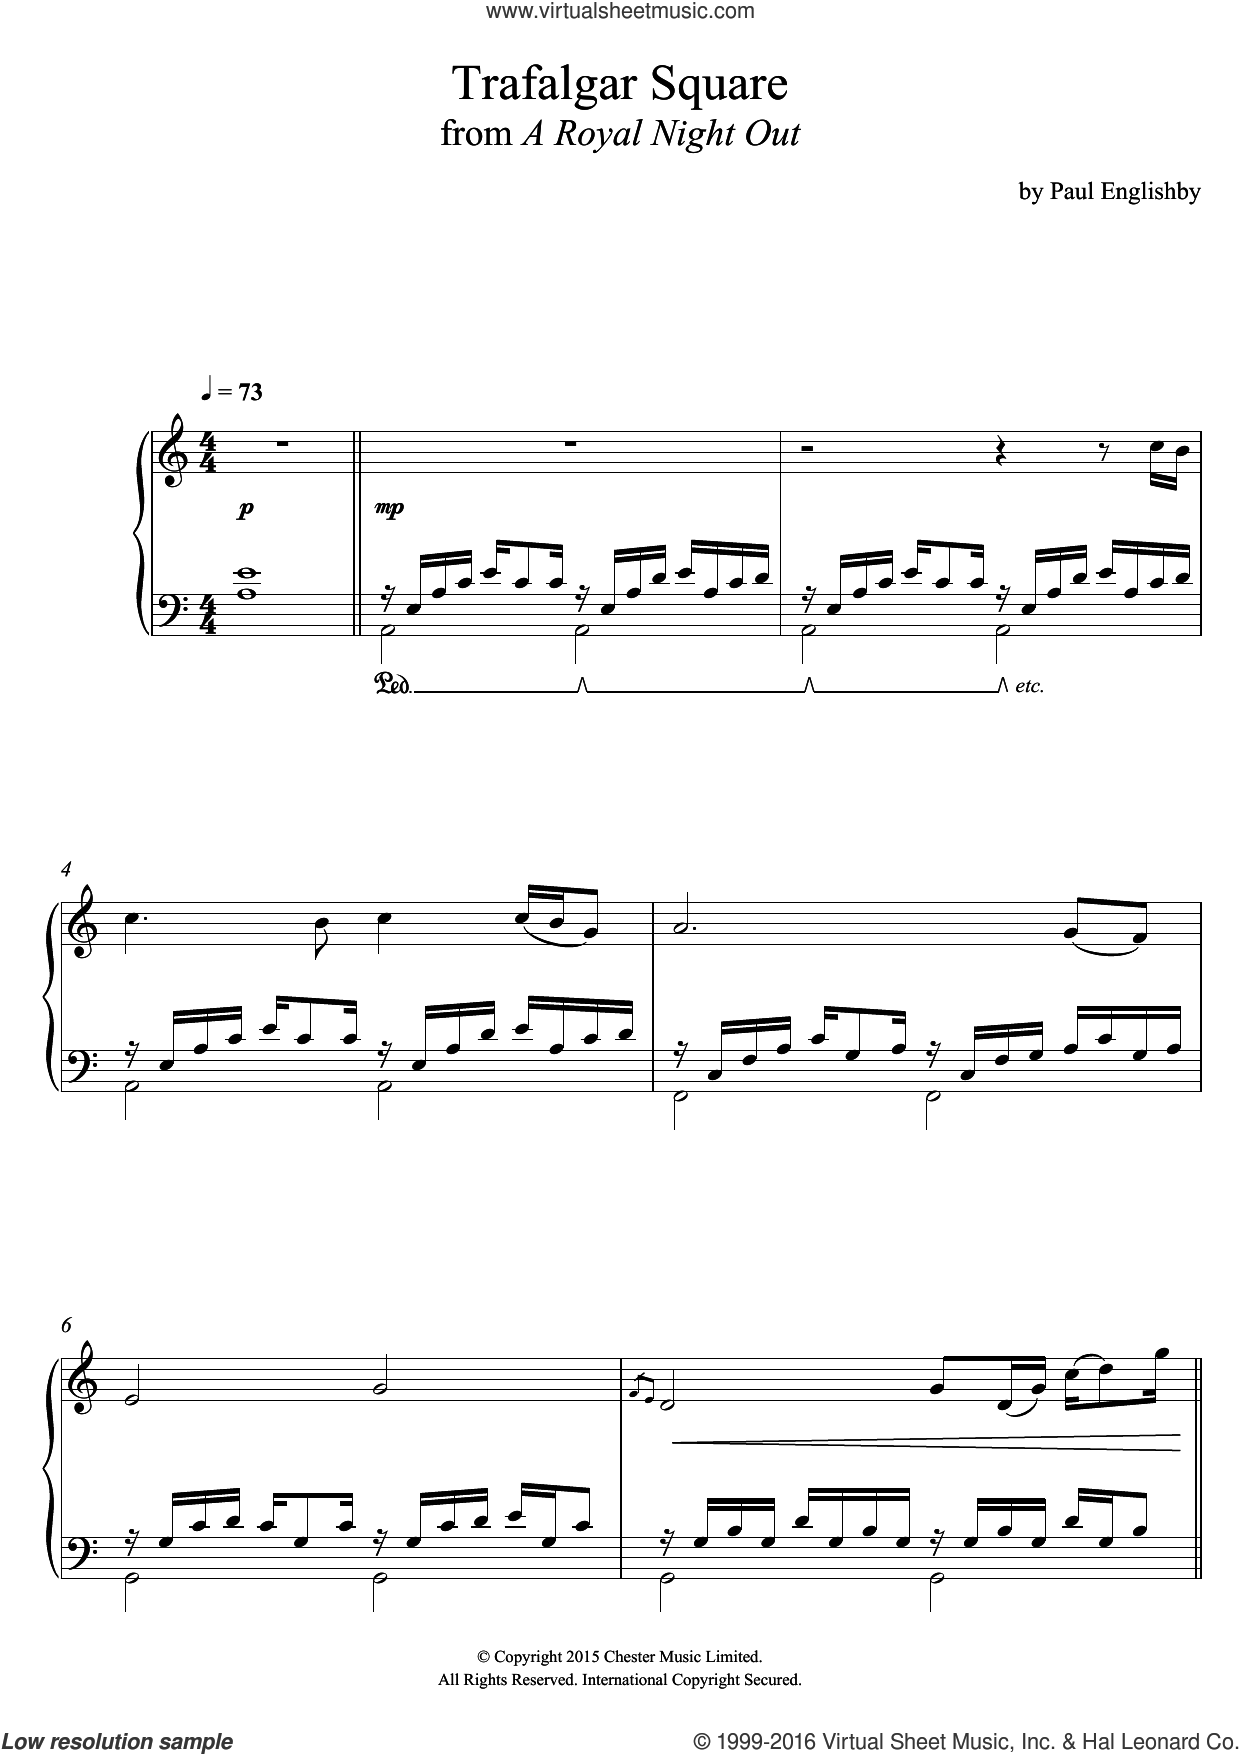 Trafalgar Square (From 'A Royal Night Out') sheet music for piano solo by Paul Englishby, intermediate skill level